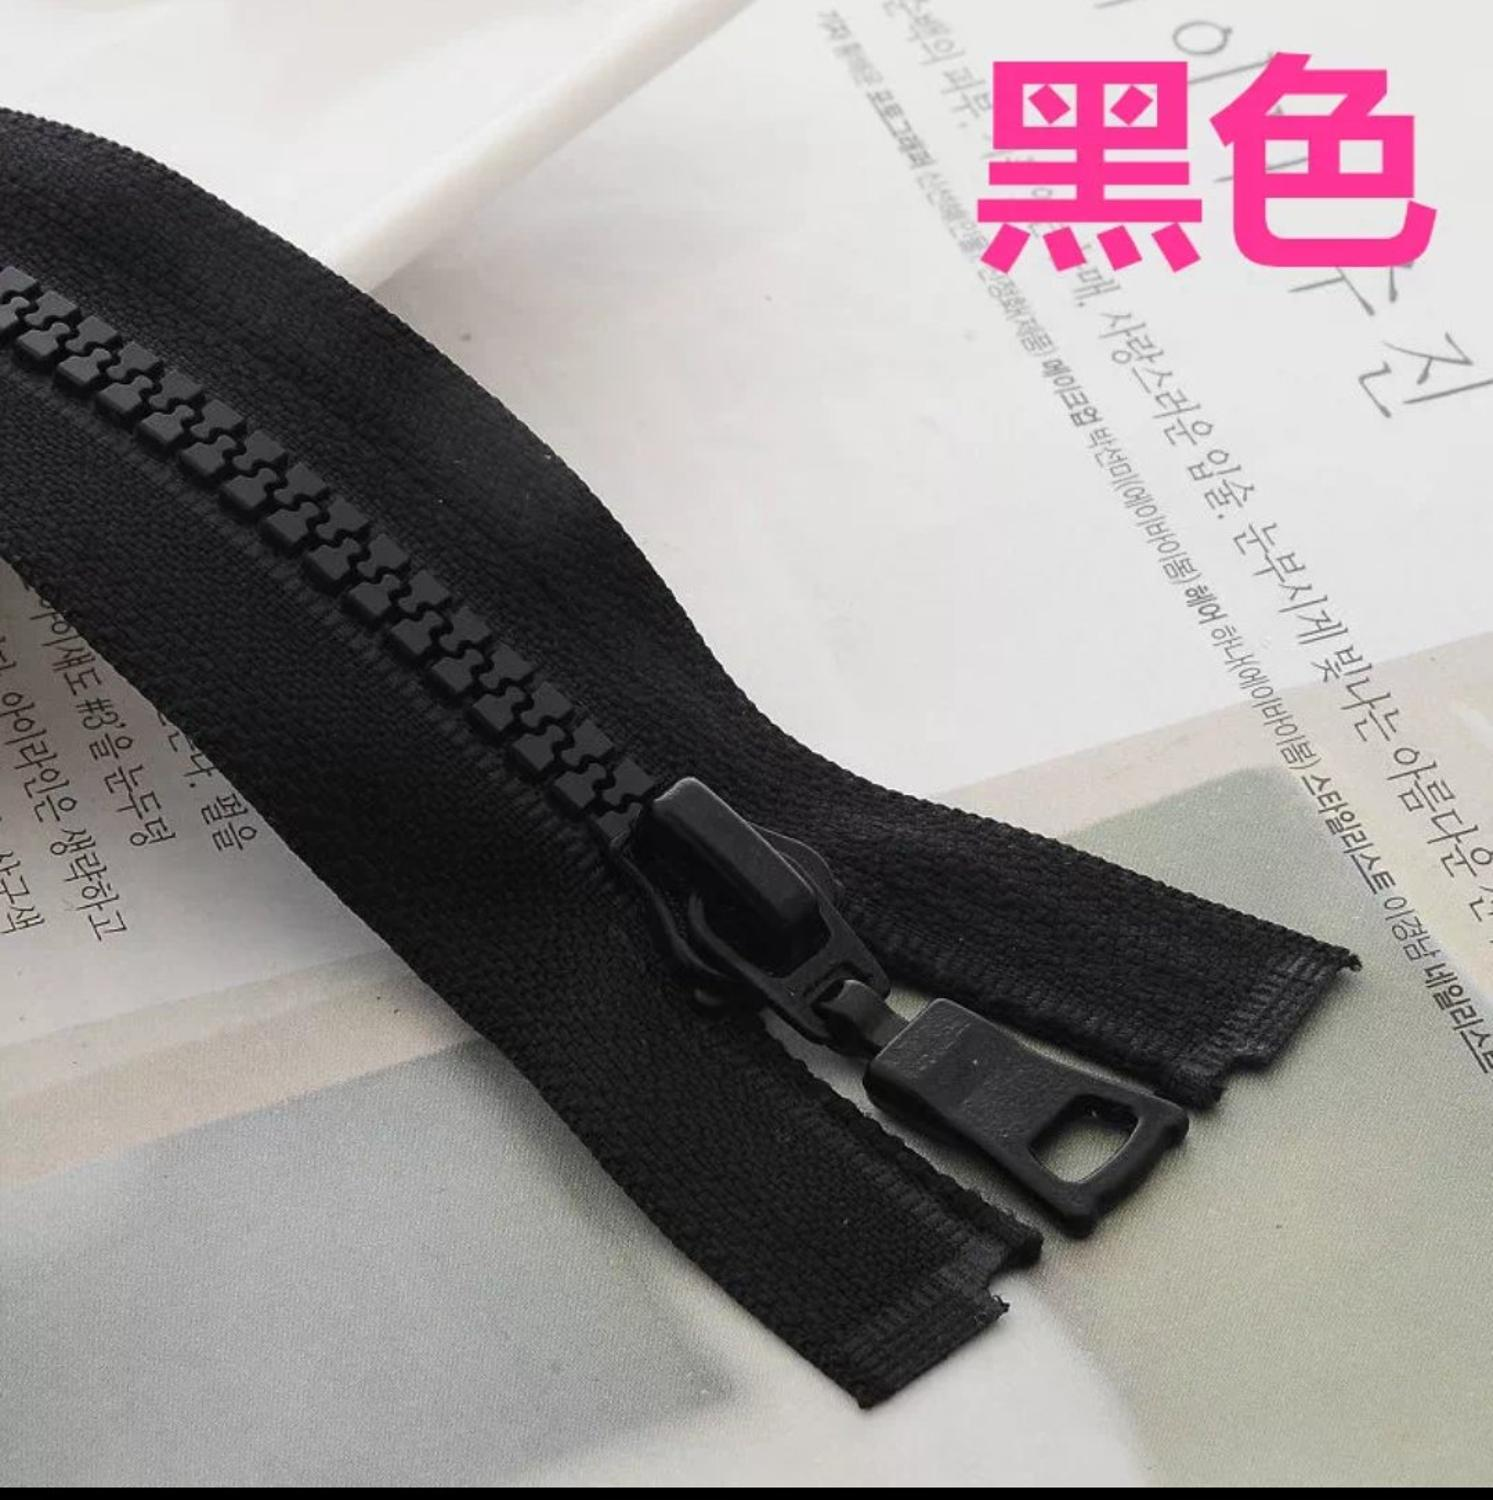 No.8 No.5 No.10 BLACK CHUNKY OPEN END ZIP *10-40 INCH* 16 LENGTHS ZIPPERS